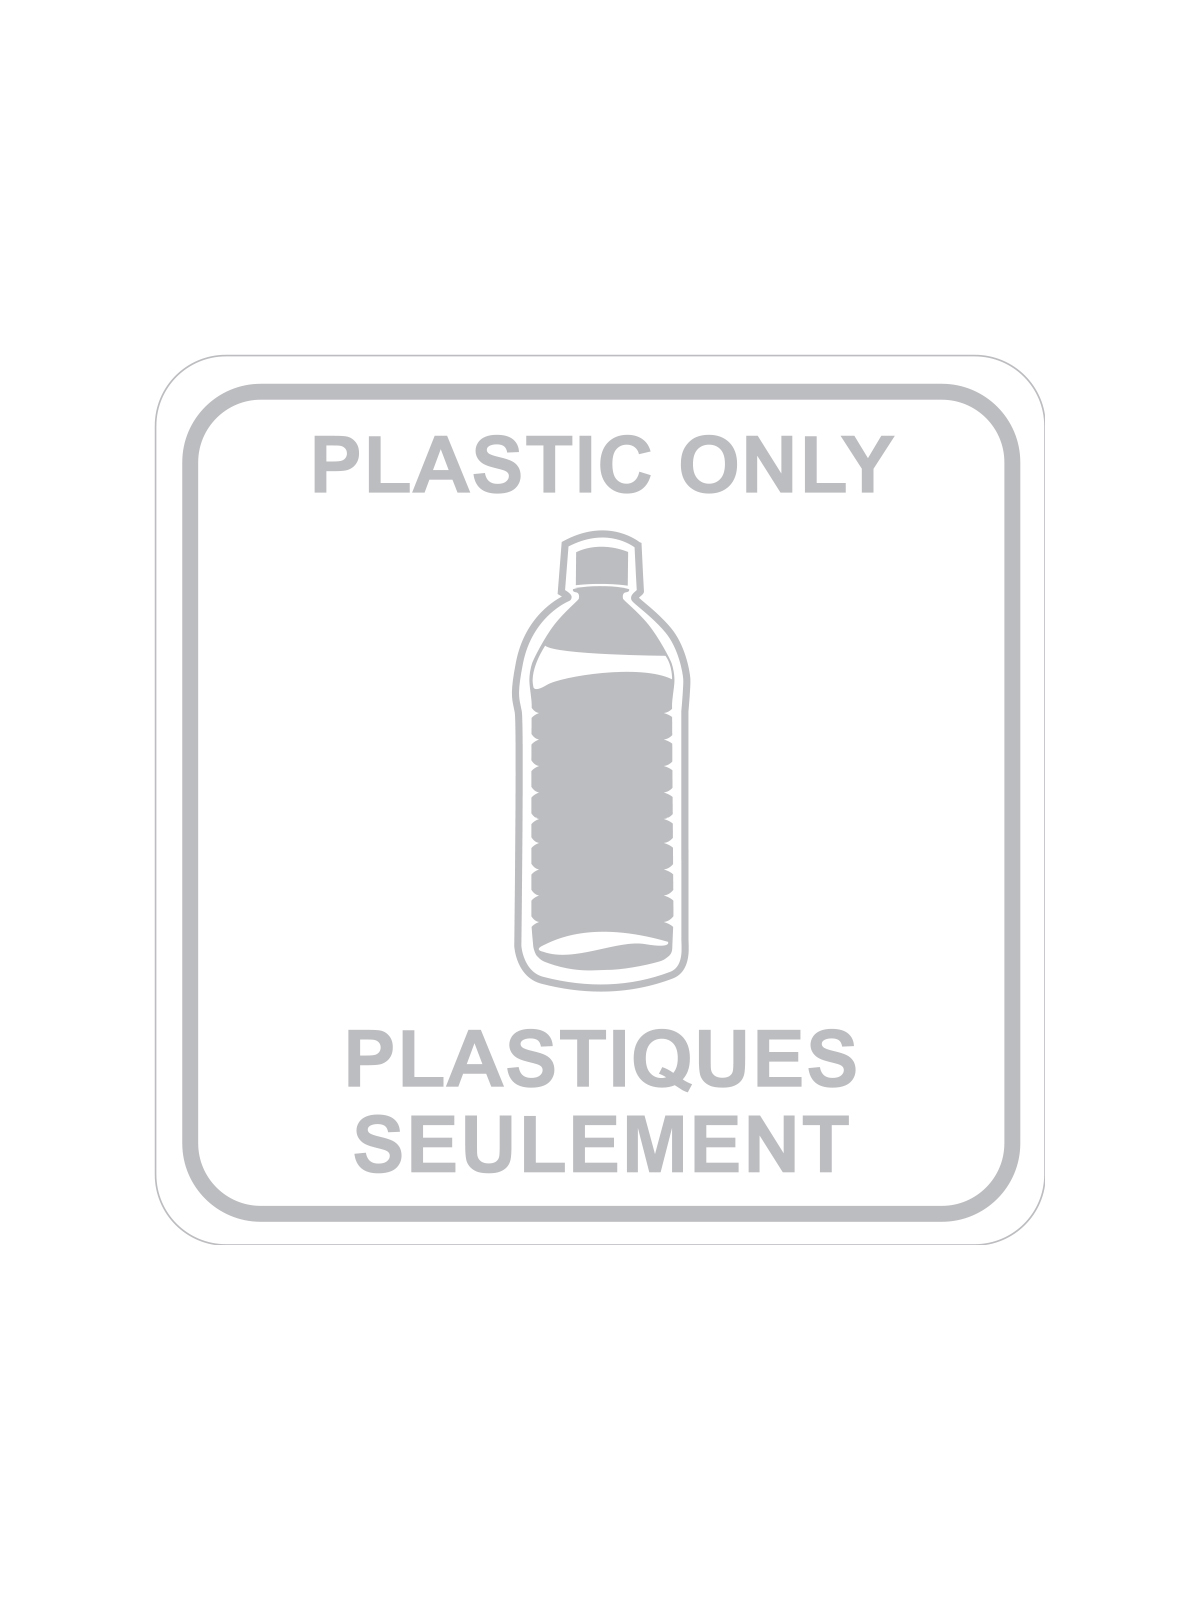 SQUARE LABEL PLASTIC ONLY - ENG/FRE